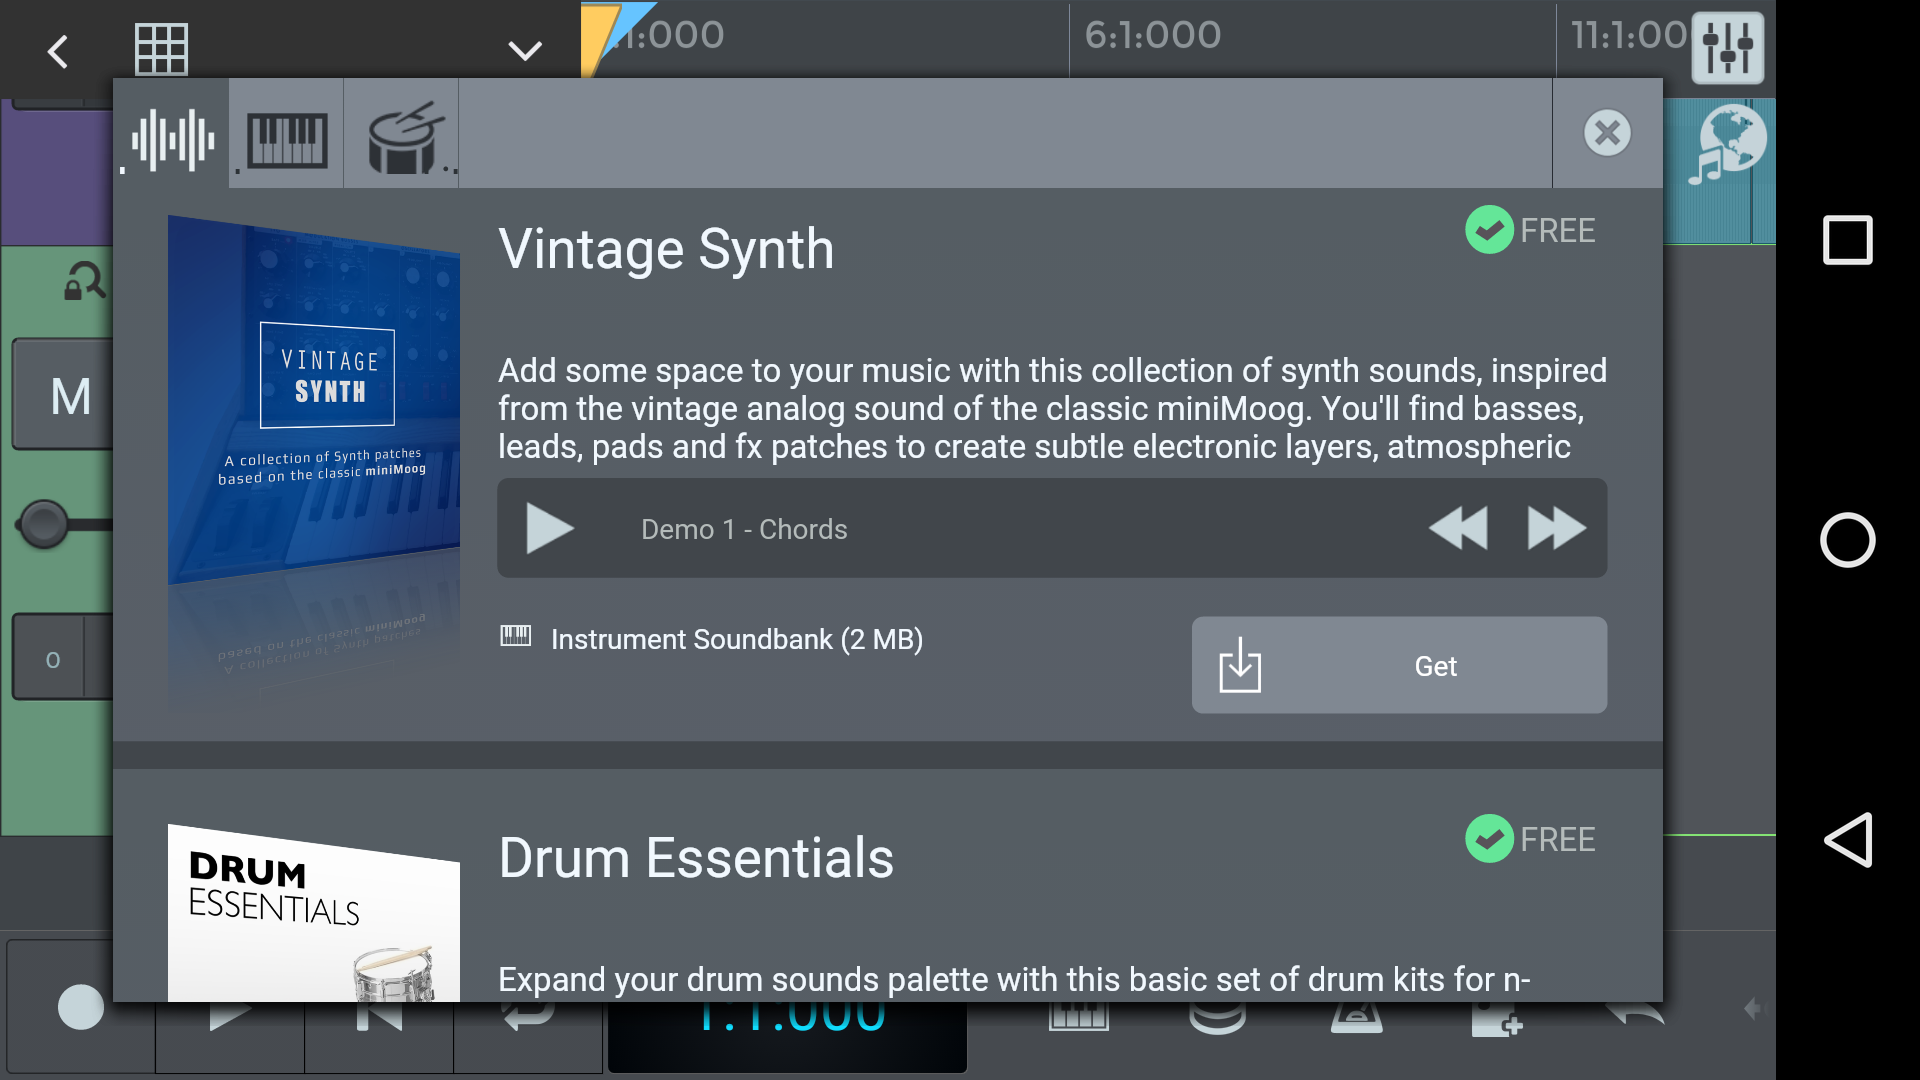 n-Track Studio for Android User Guide | n-Track Studio